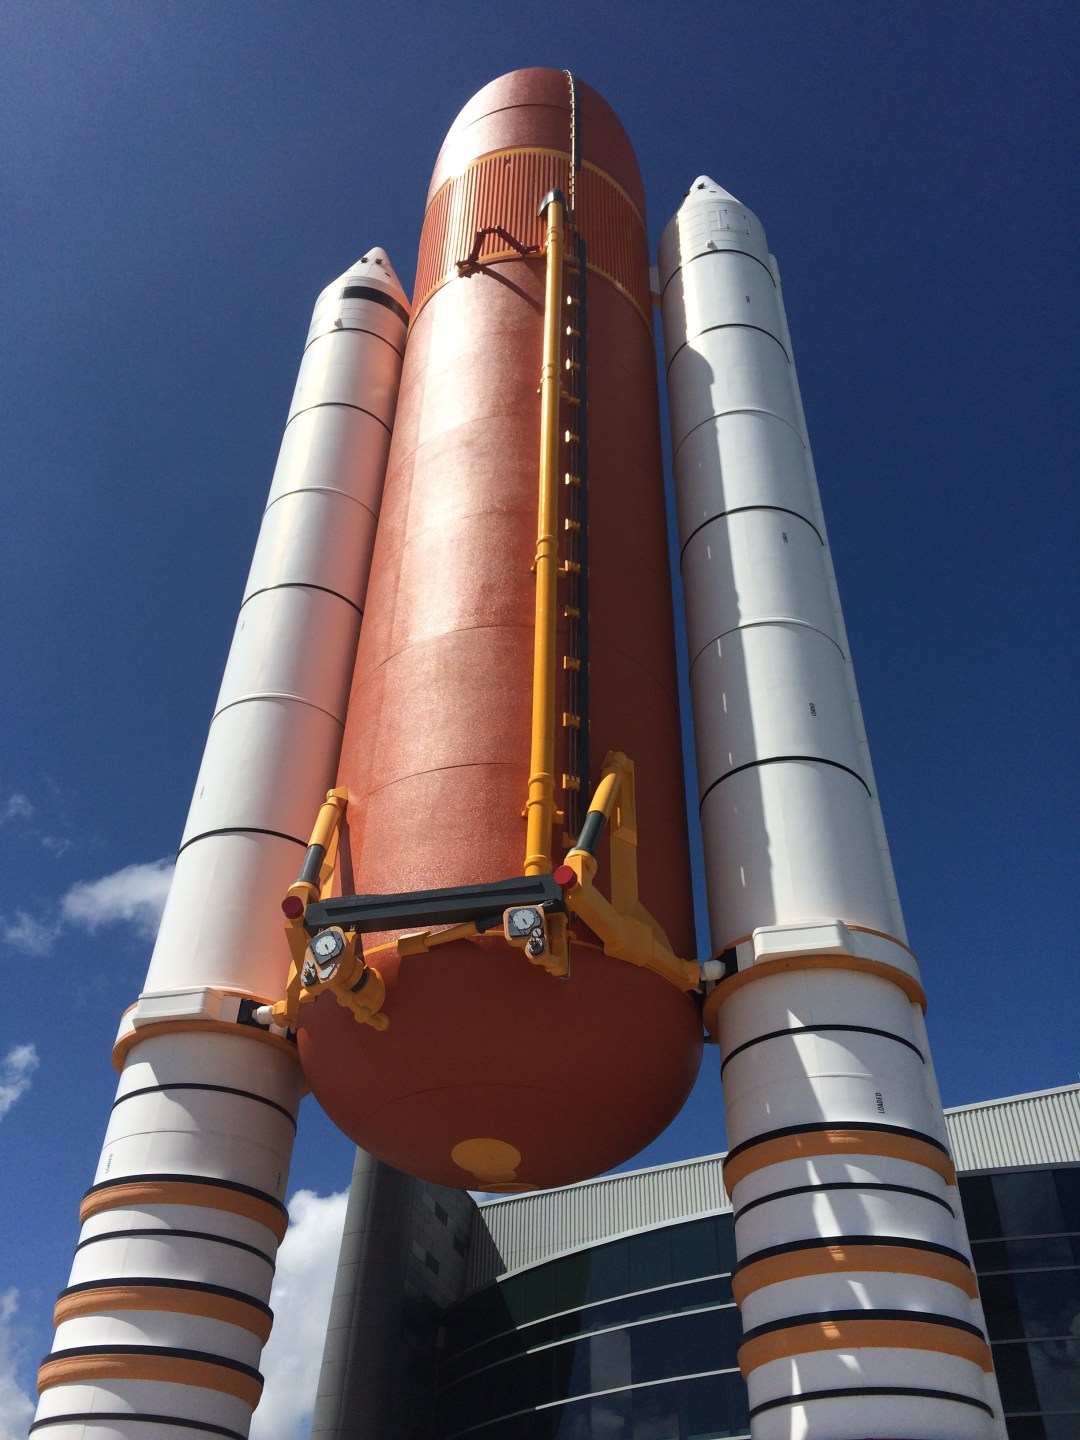 Kennedy Space Center 2